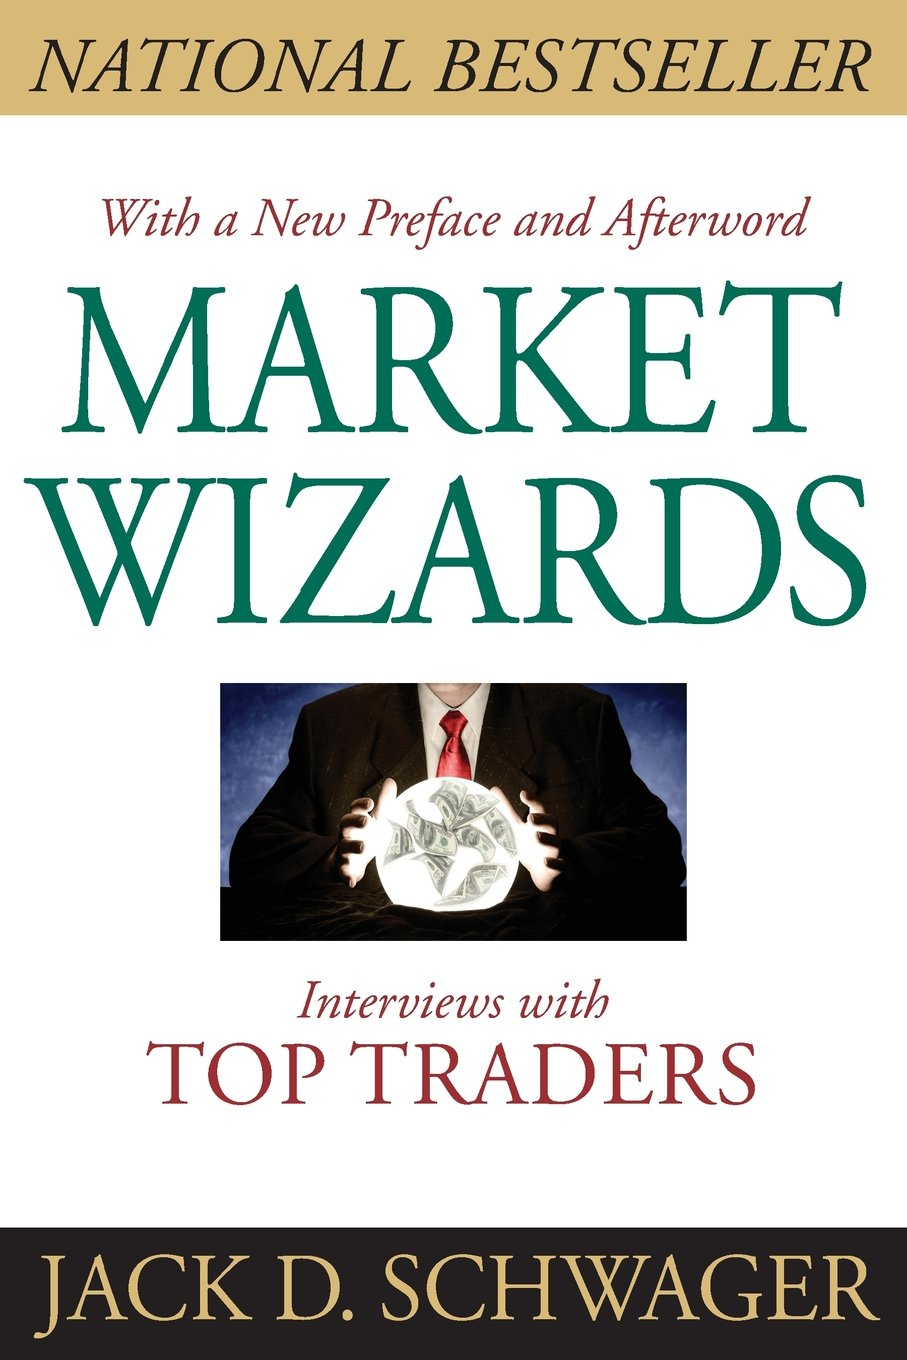 Market Wizards by Jack Schwacer